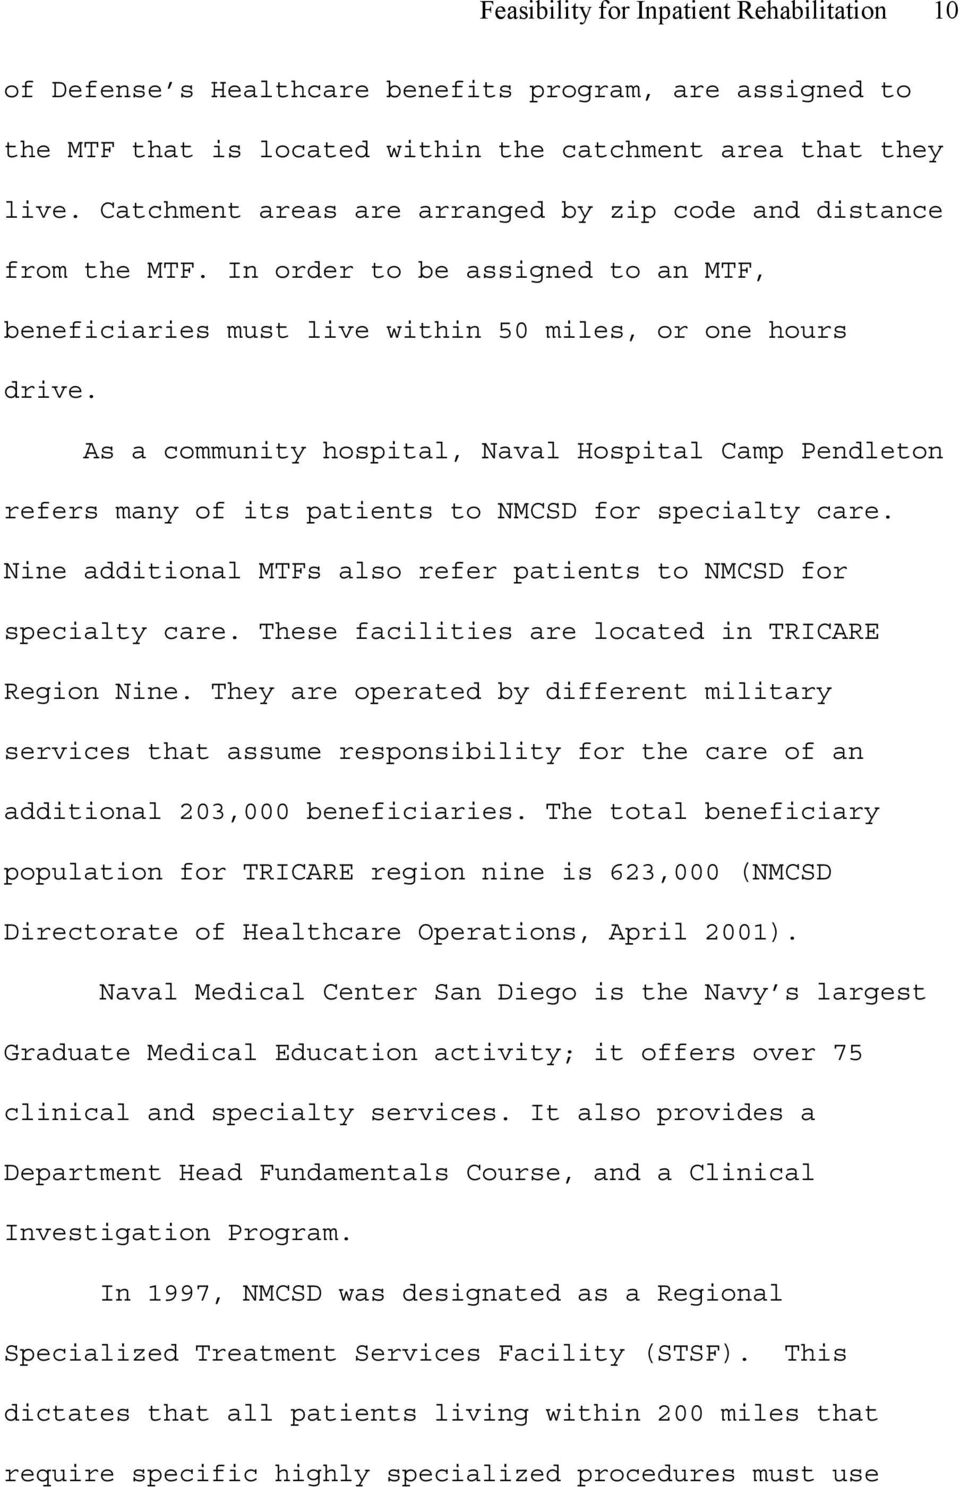 As a community hospital, Naval Hospital Camp Pendleton refers many of its patients to NMCSD for specialty care. Nine additional MTFs also refer patients to NMCSD for specialty care.